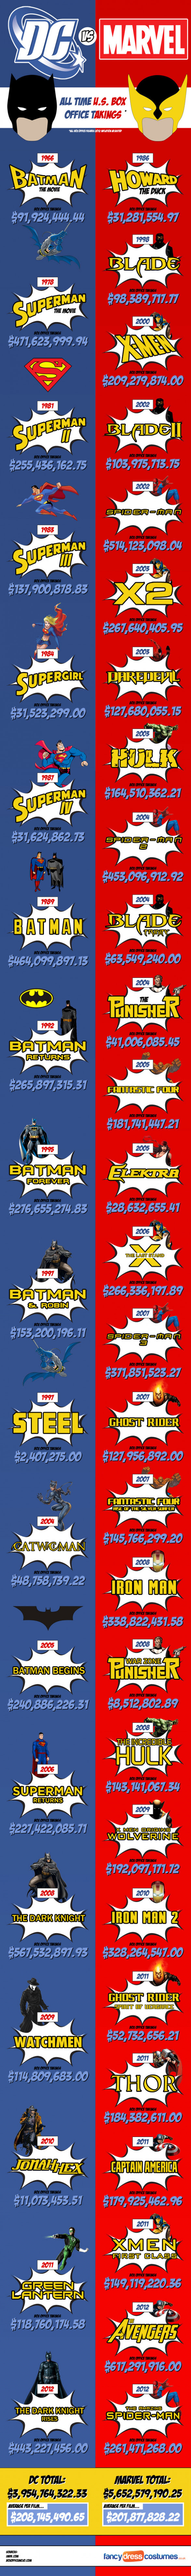 Marvel Vs. DC At The Box Office